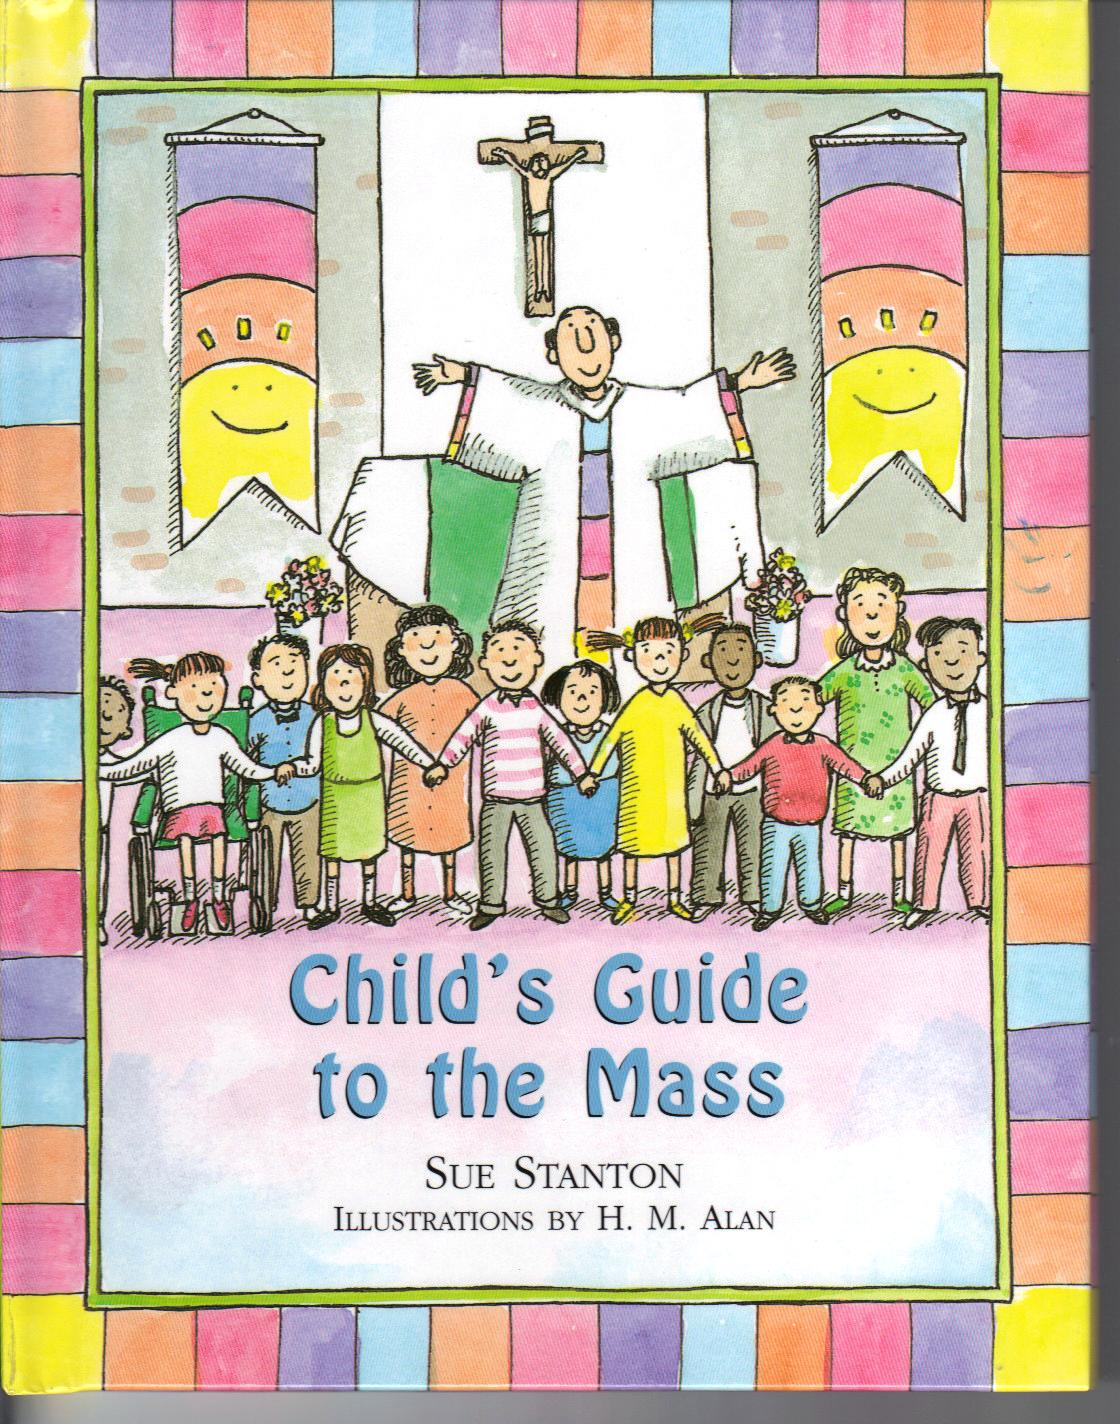 Child's Guide To the Mass by Sue Stanton 108-9780809166824